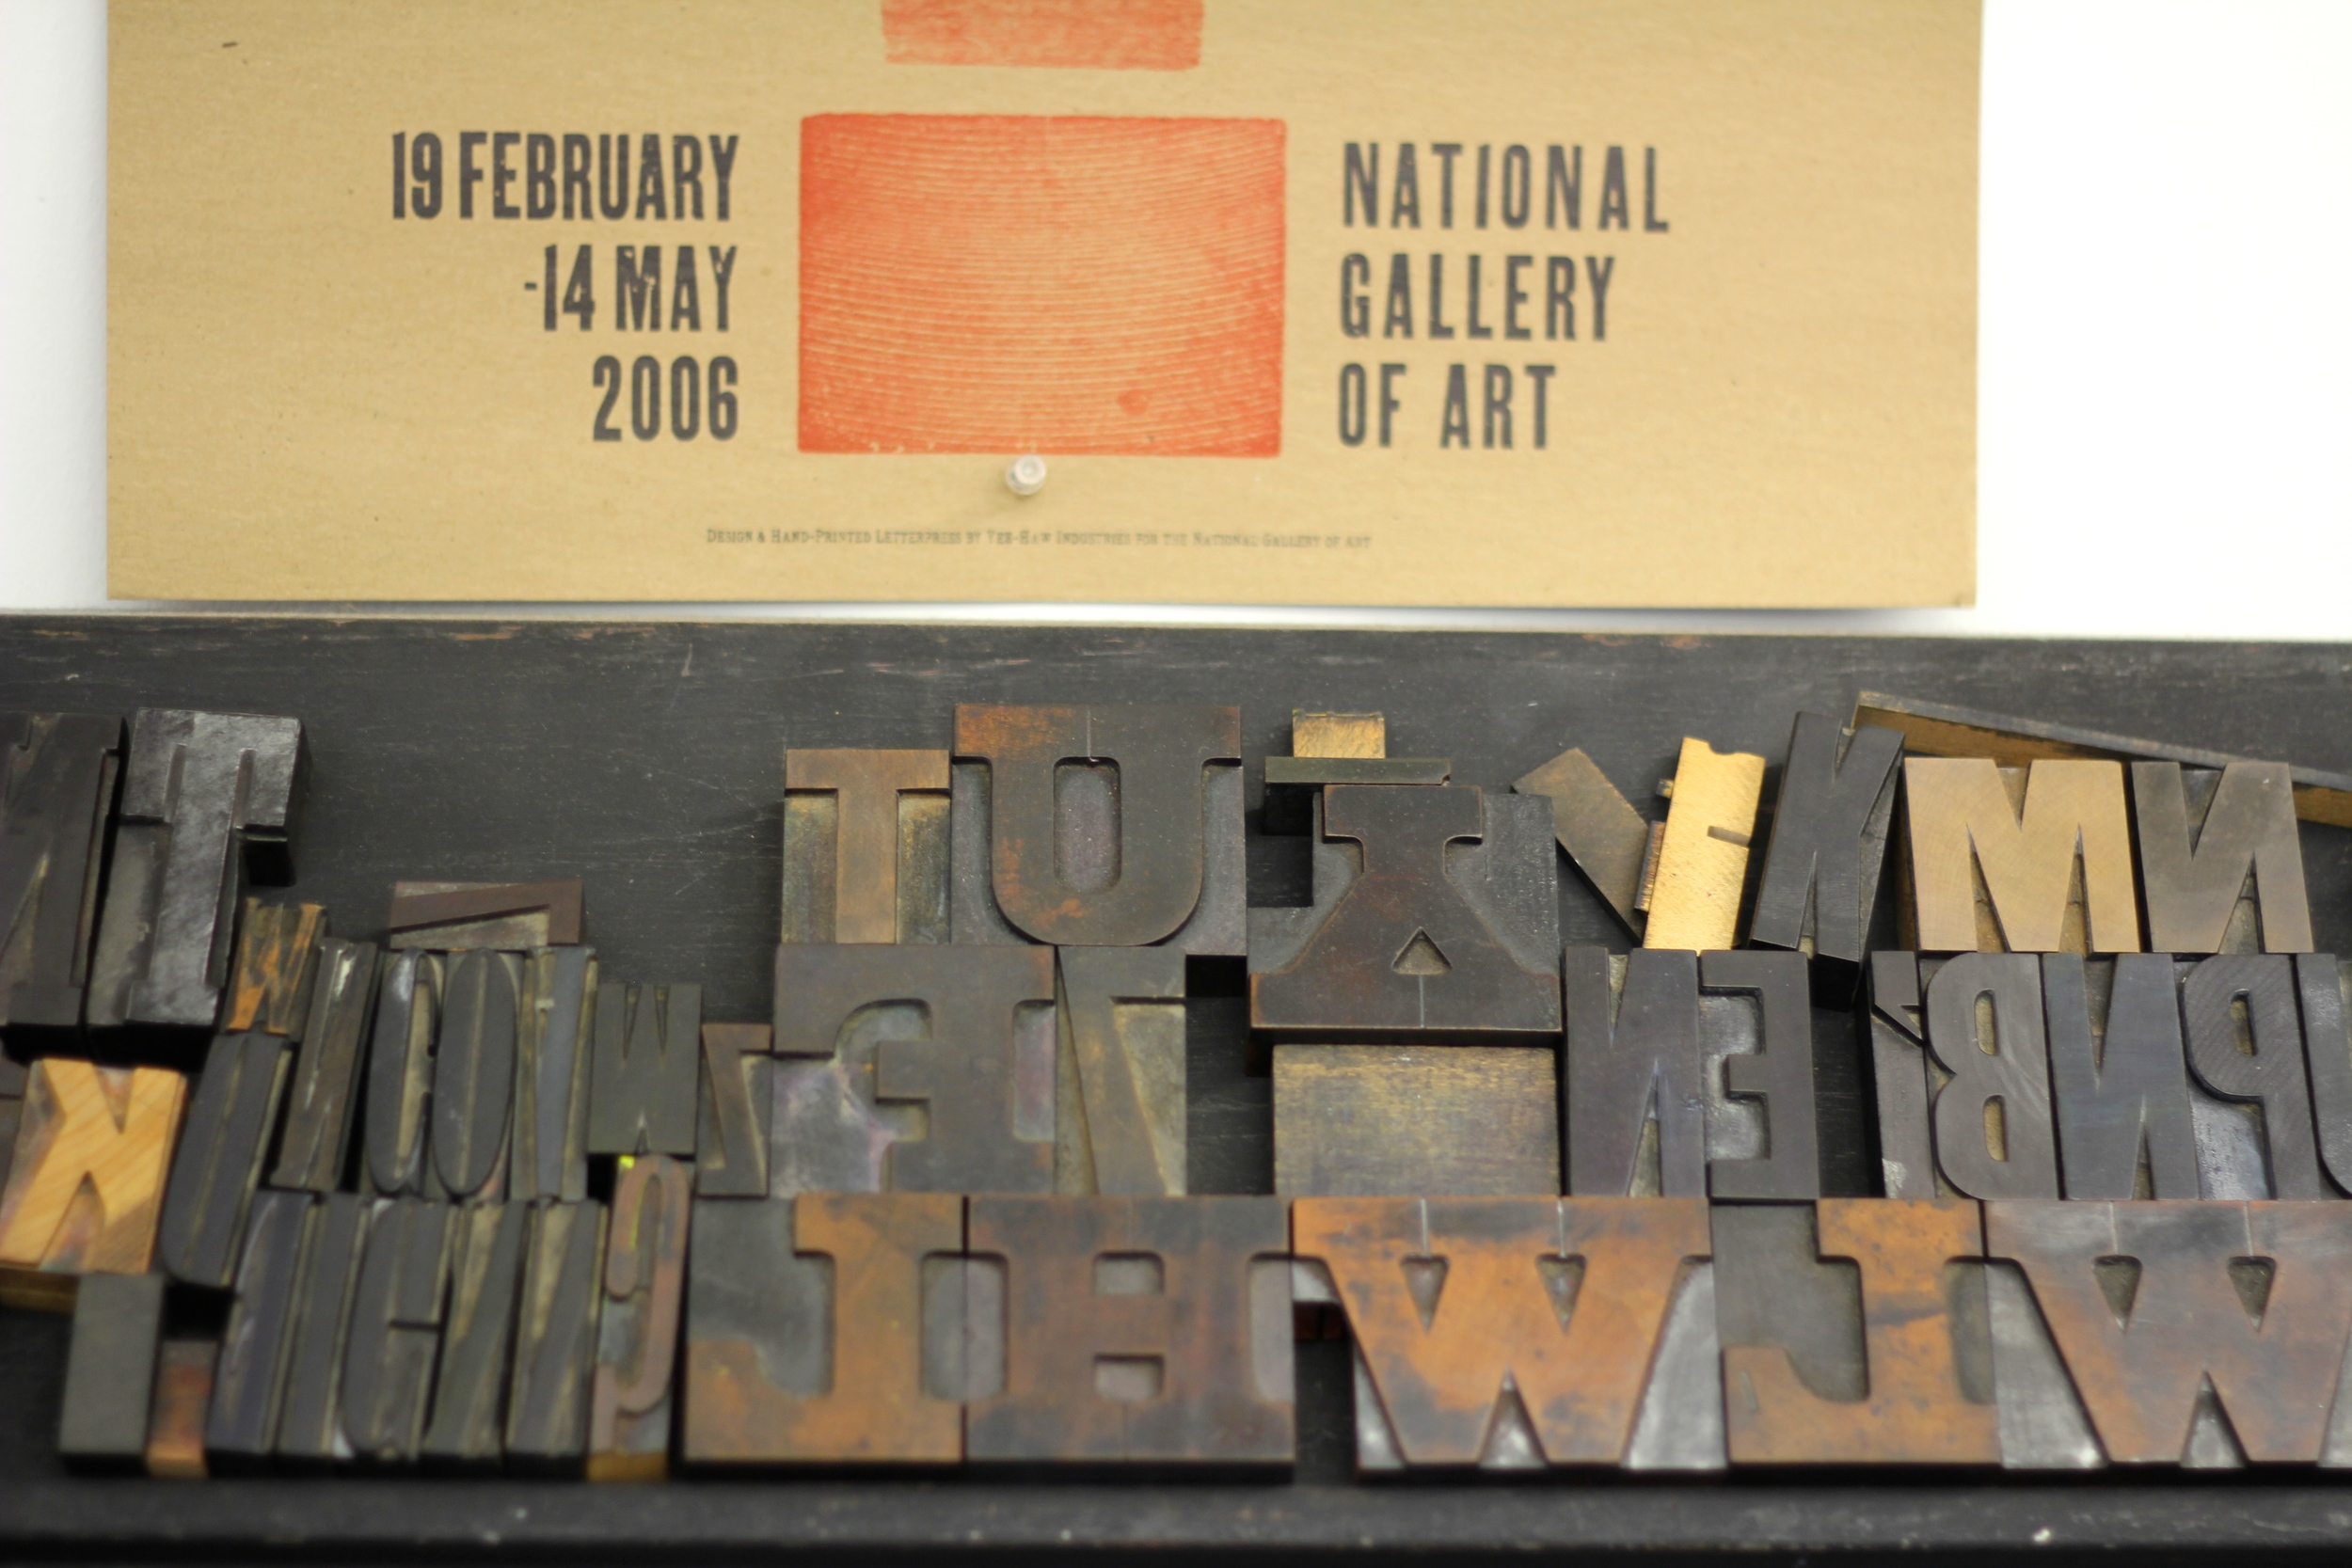 {The type is made of metal or wood - here are some wood pieces}